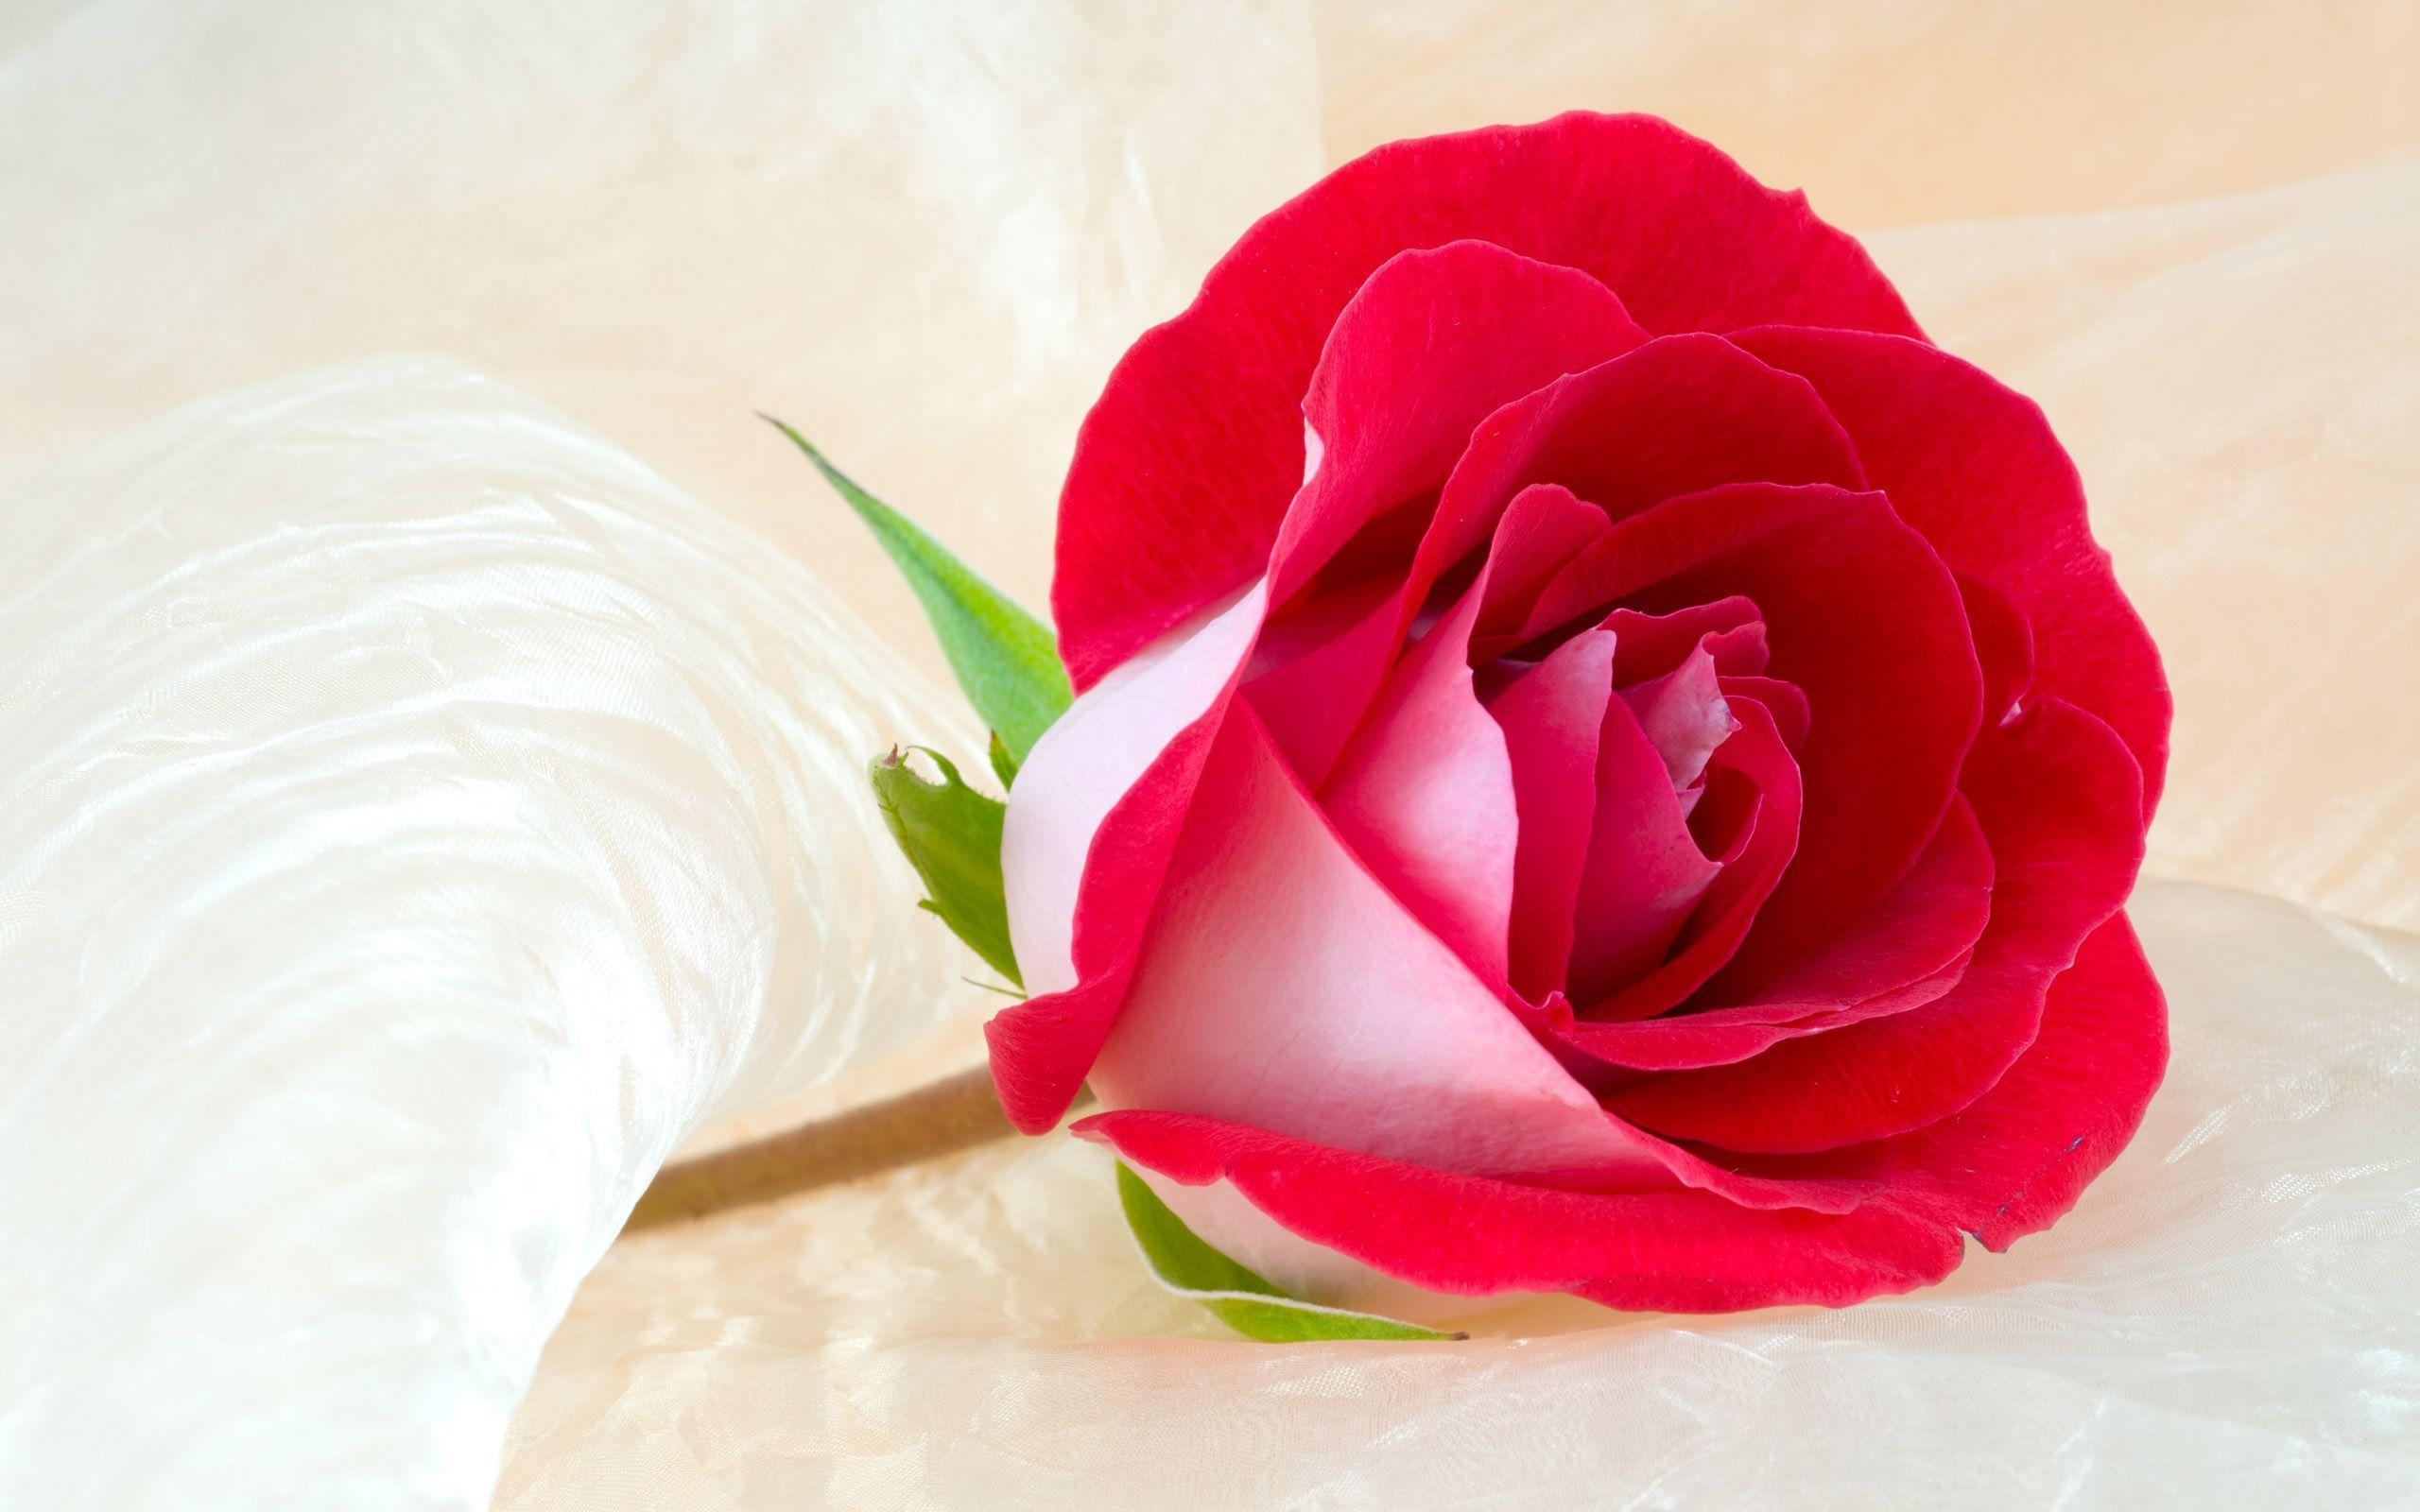 Wallpapers Flower Rose Love Wallpaper